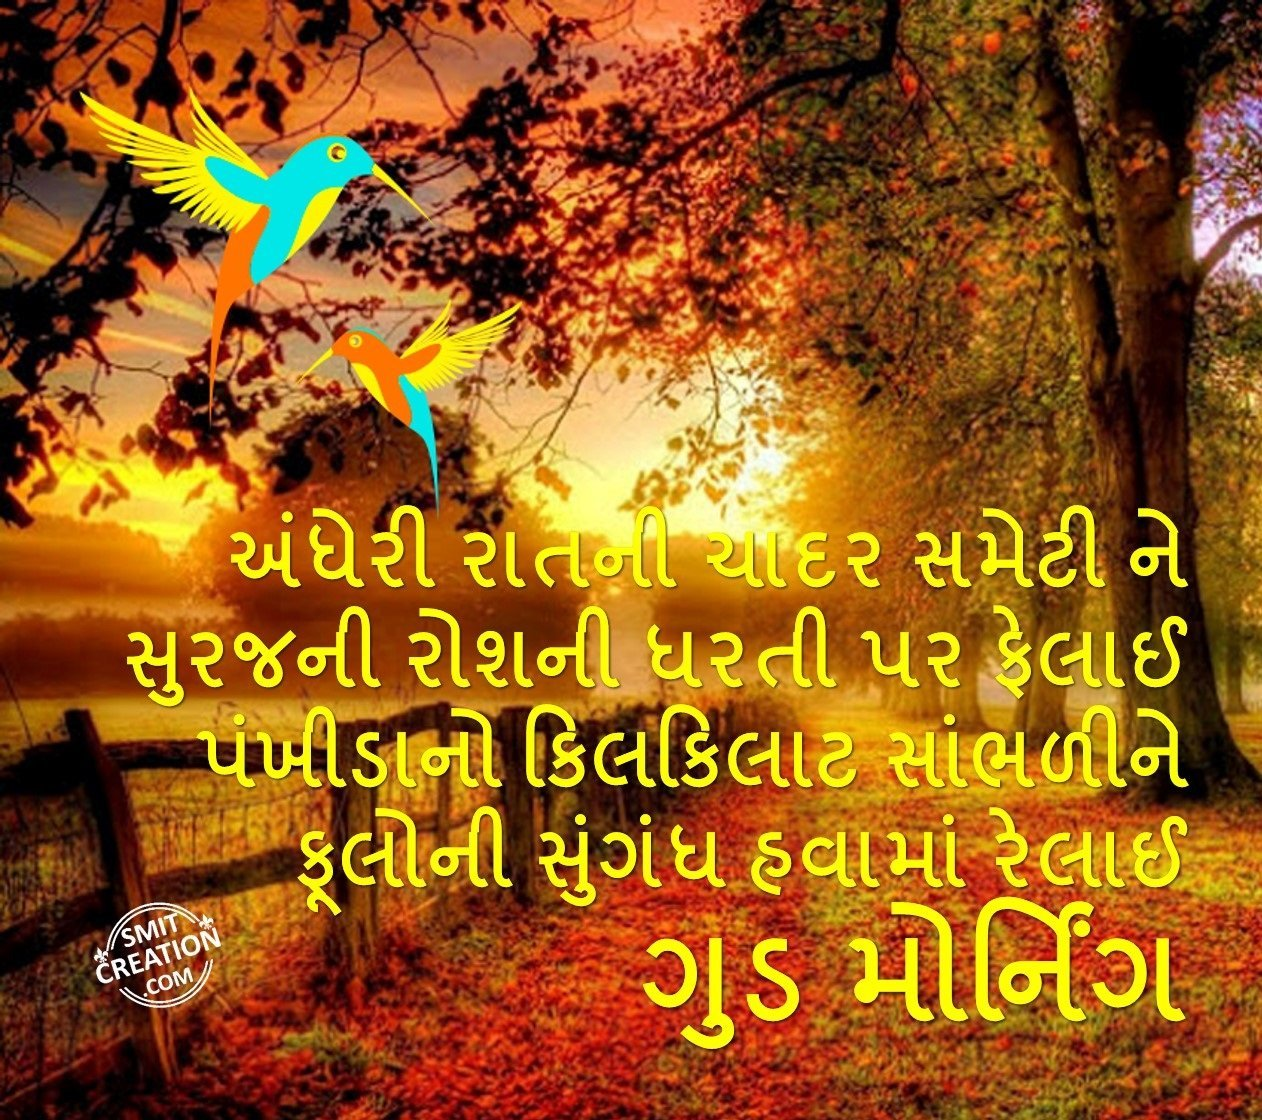 Good Morning Gujarati Smitcreationcom